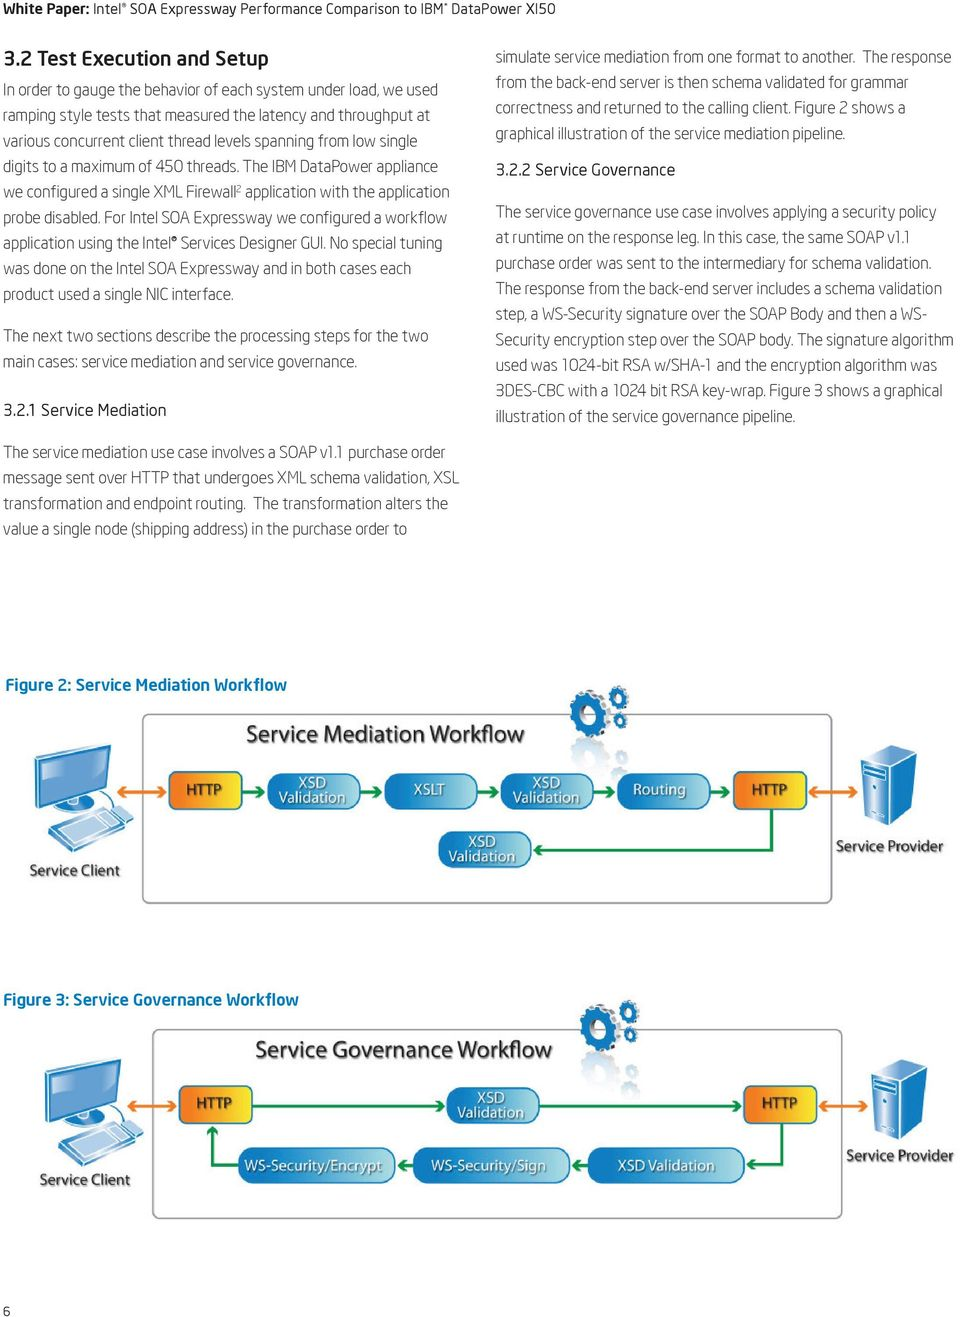 For Intel SOA Expressway we configured a workflow application using the Intel Services Designer GUI.